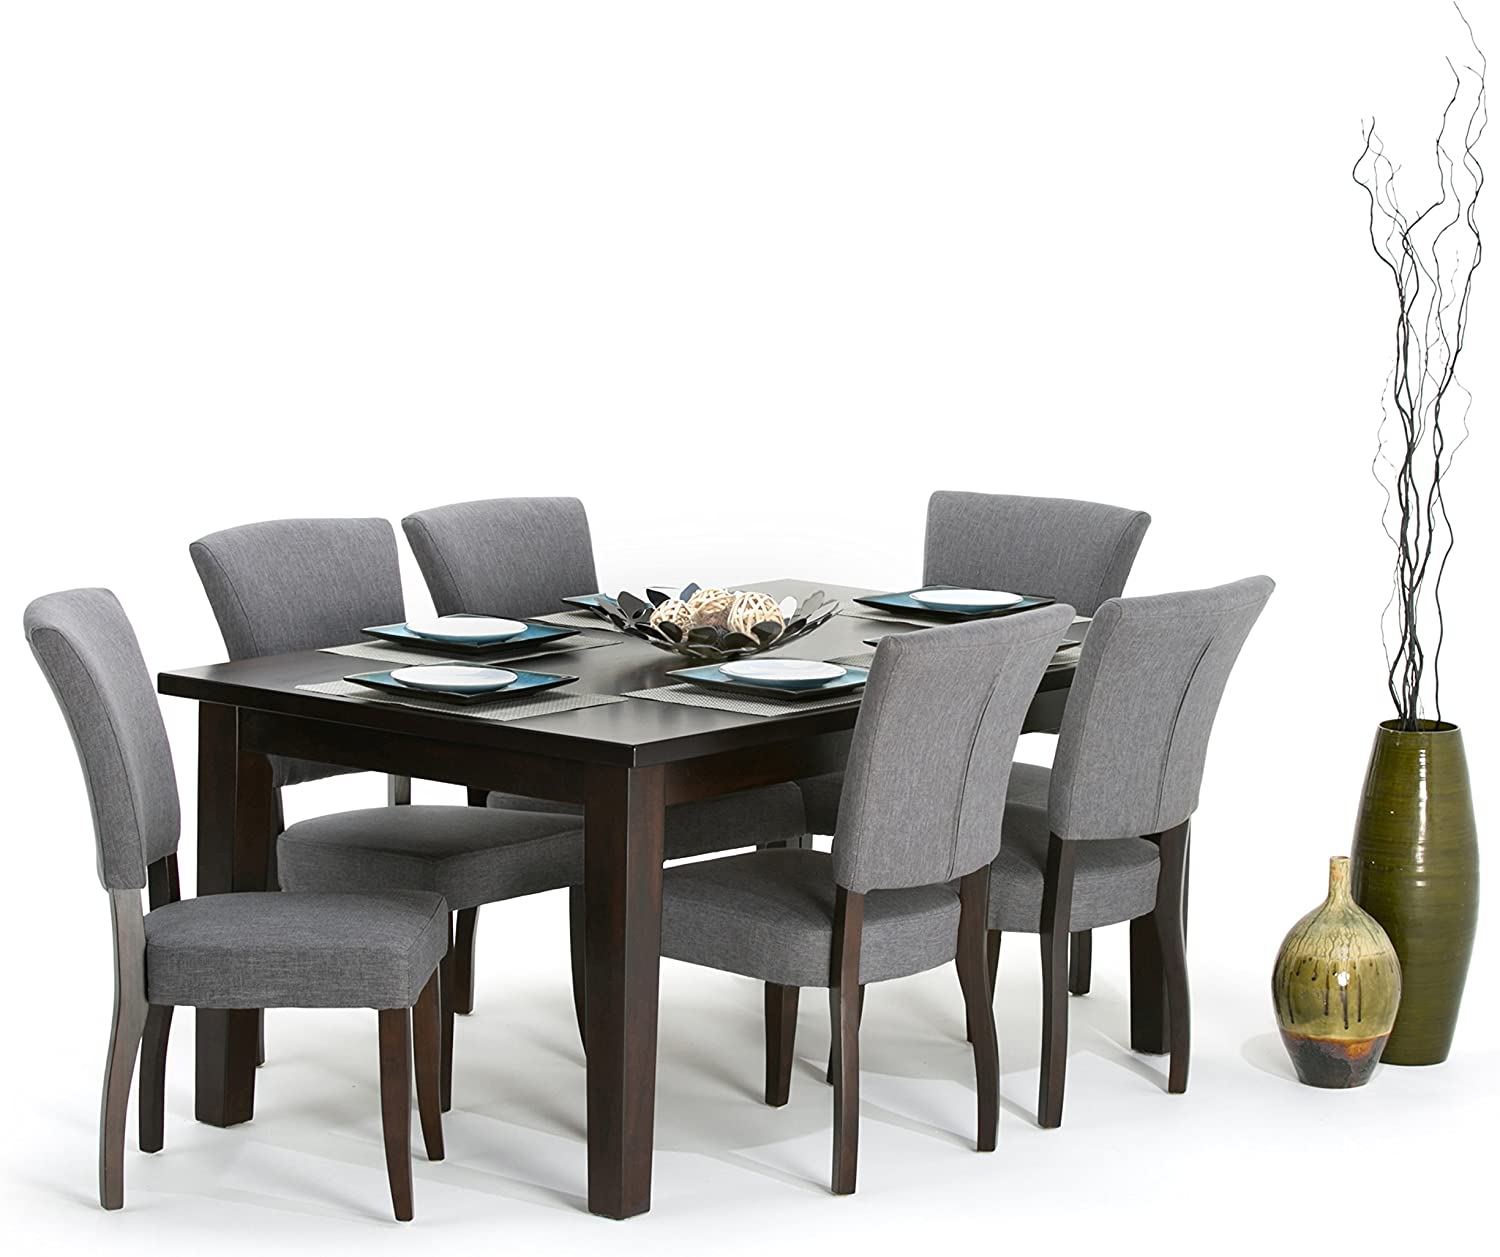 Amazon Com Simpli Home Joseph Contemporary 7 Pc Dining Set With 6 Upholstered Dining Chairs In Slate Grey Linen Look Fabric And 66 Inch Wide Table Table Chair Sets